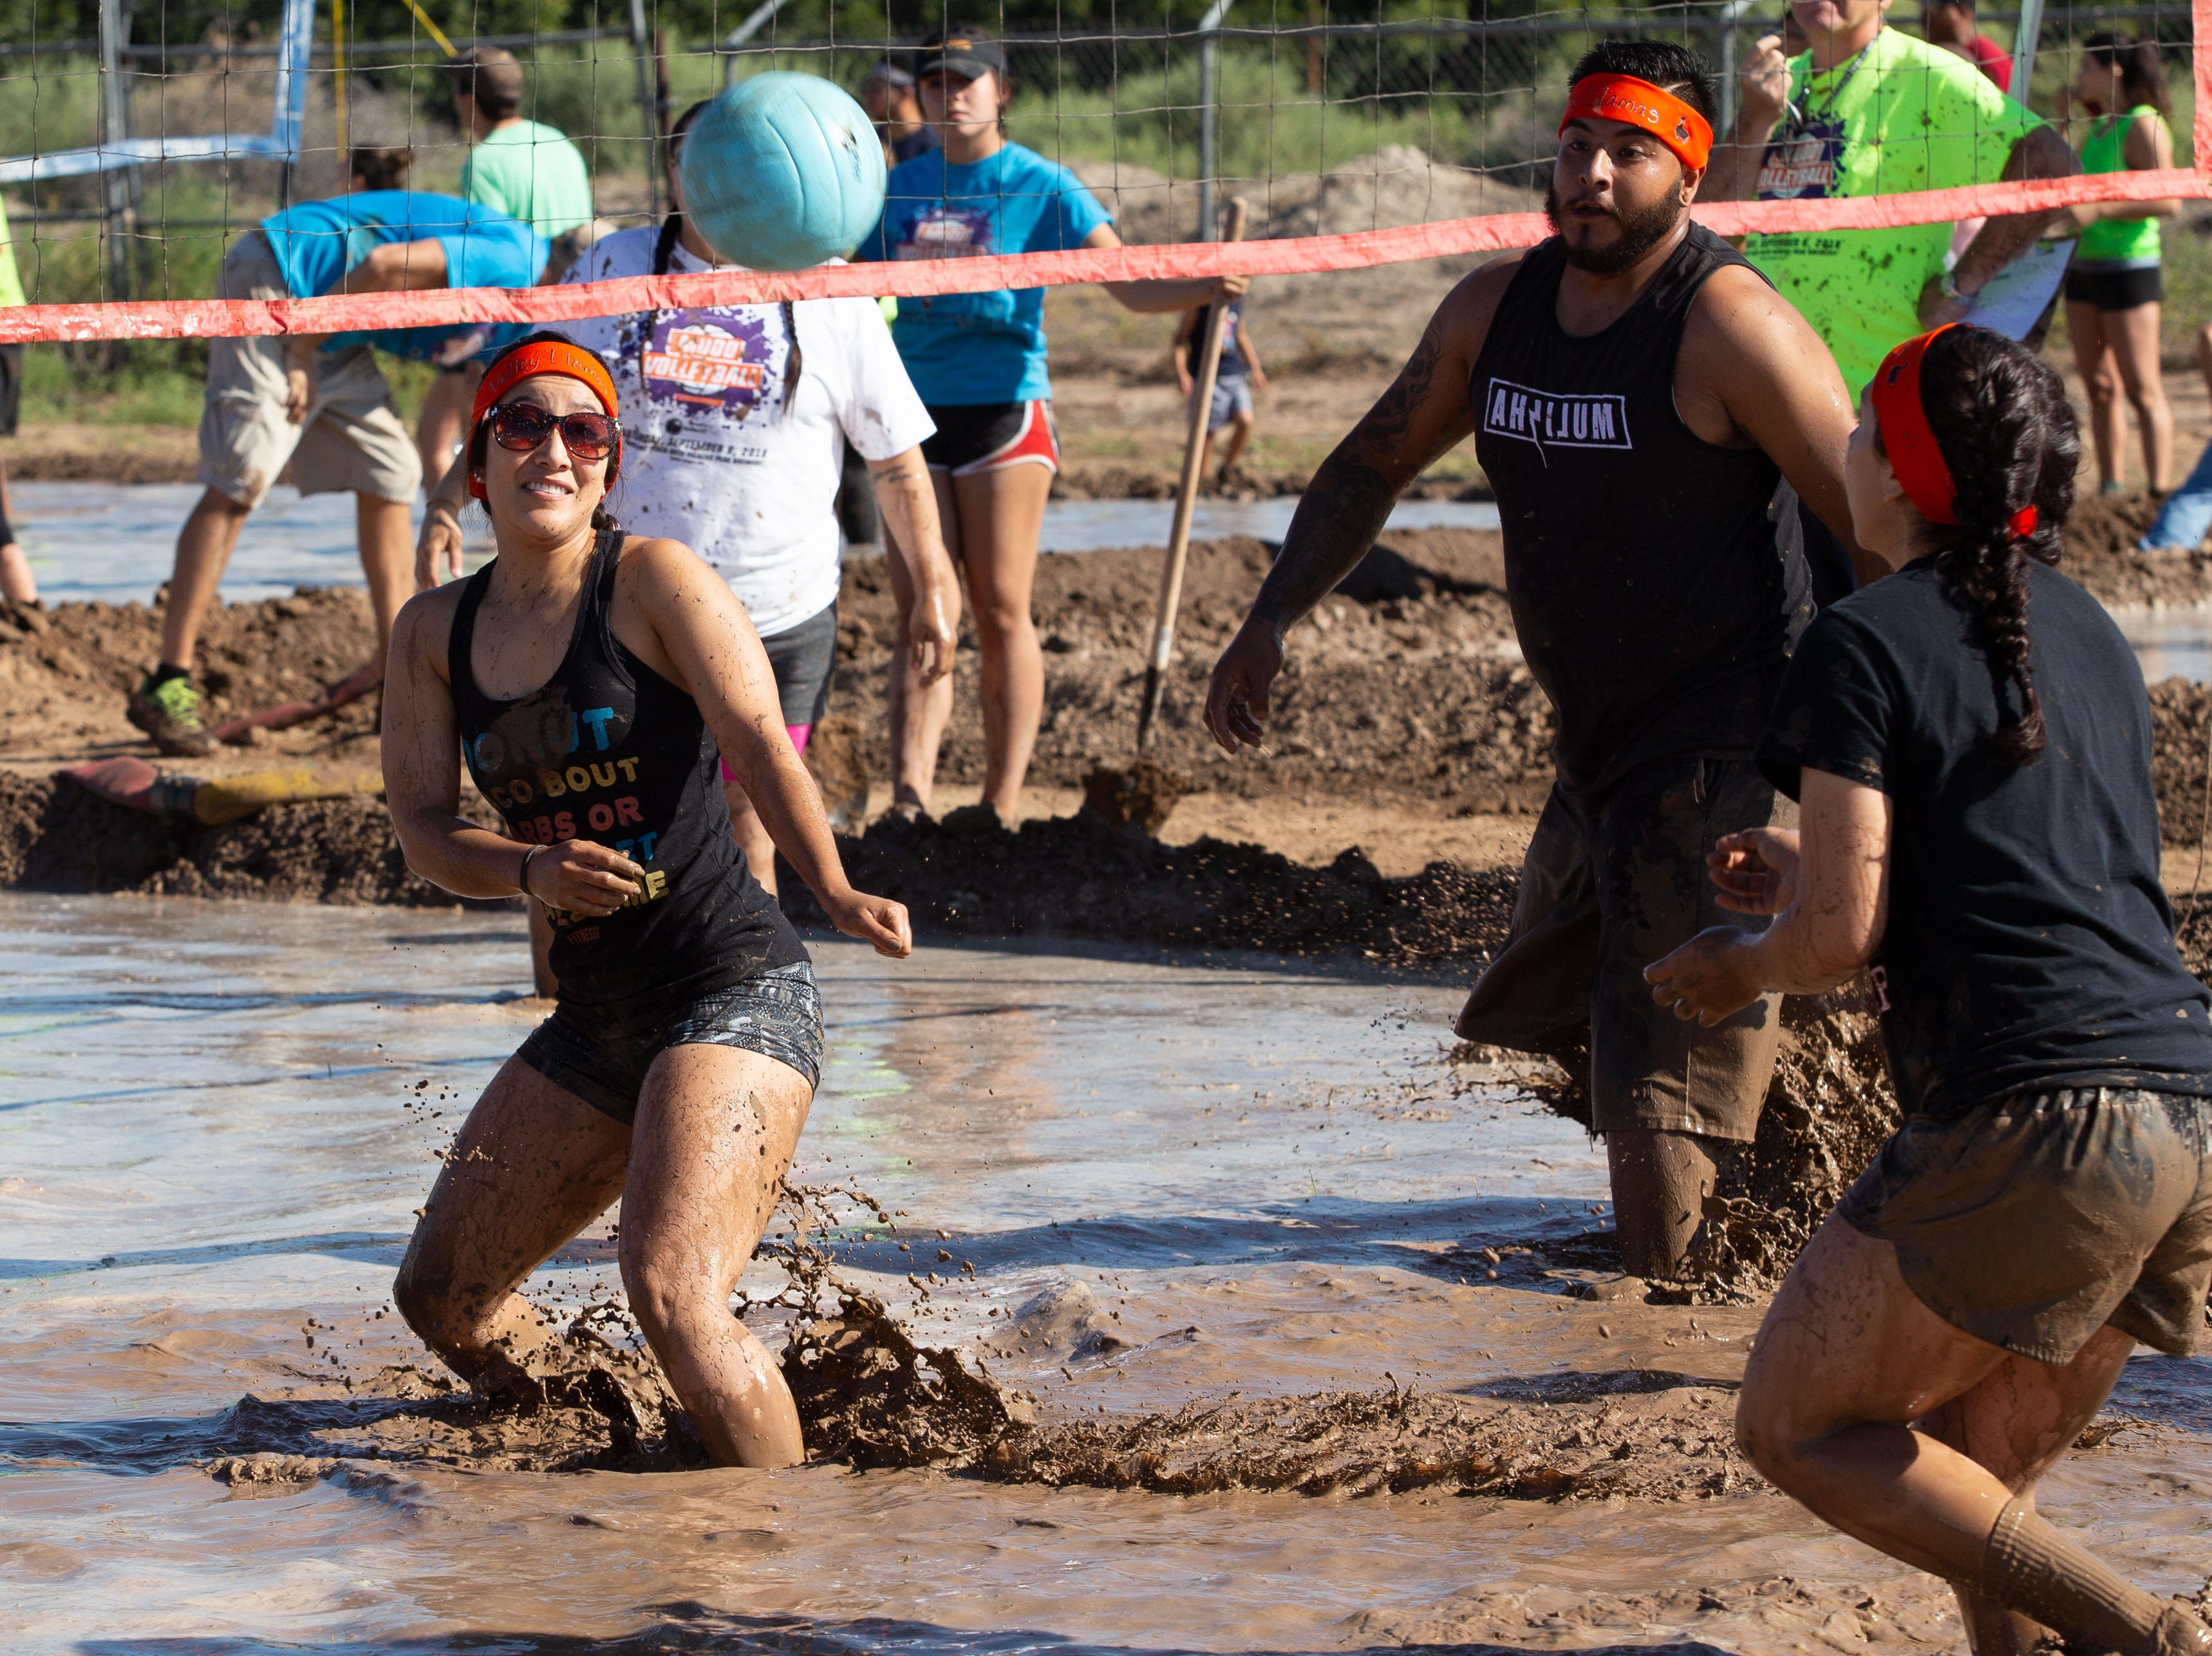 Volley Llamas team members race towards Jasmin Cisneros as she prepares to hit the ball during the 9th Annual Mudd Volleyball tournament on September 8, 2018.